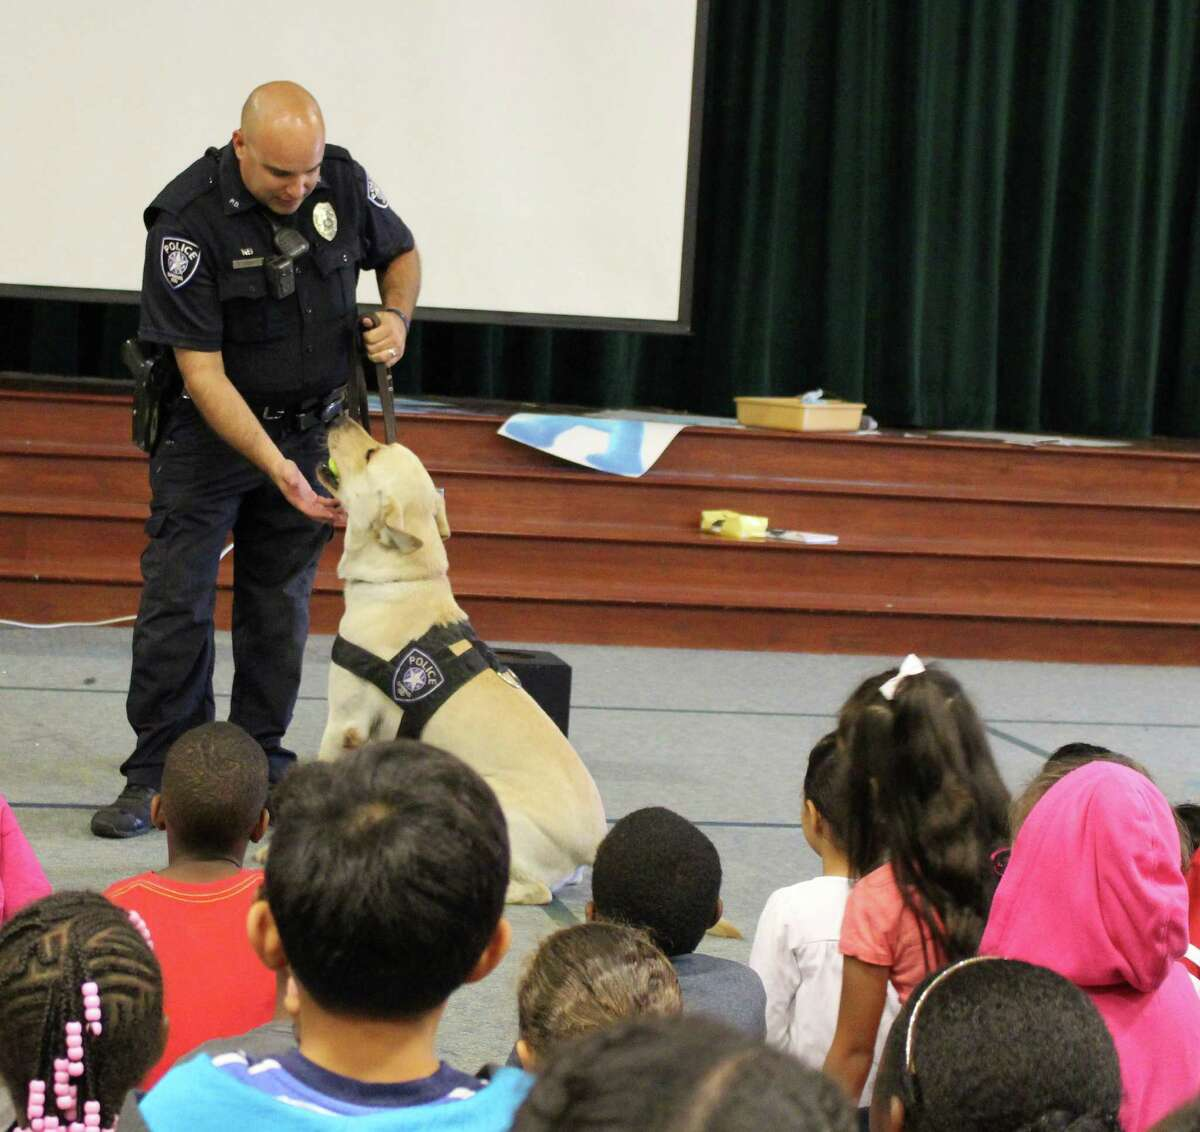 Spring ISD Police Officer Fuentes and K-9 Paco demonstrate the narcotic detector dogÂ?'s skills during a Red Ribbon Week assembly at Major Elementary School.